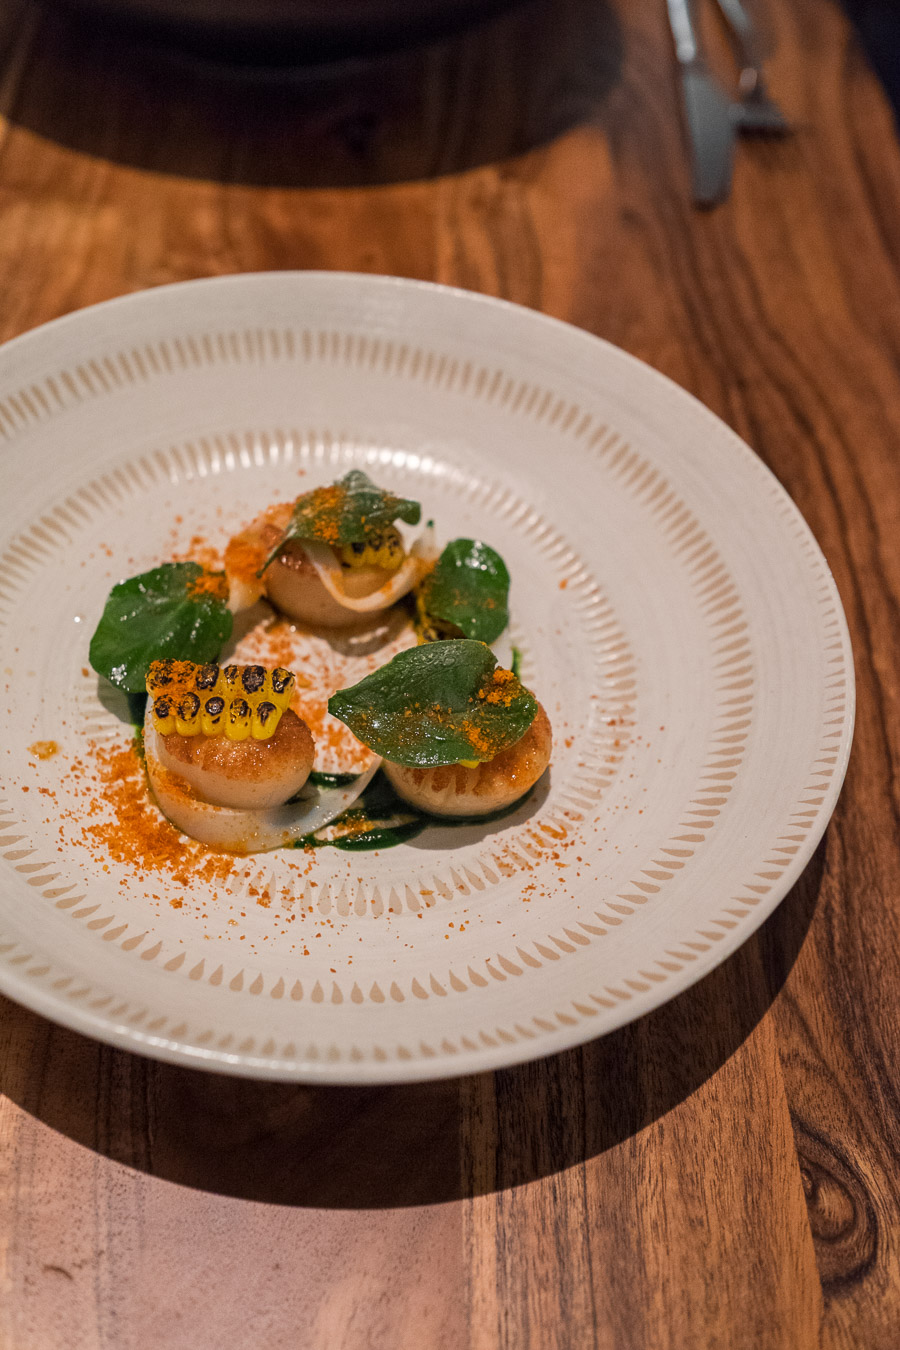 Scallops, corn, spinach + shaved squid